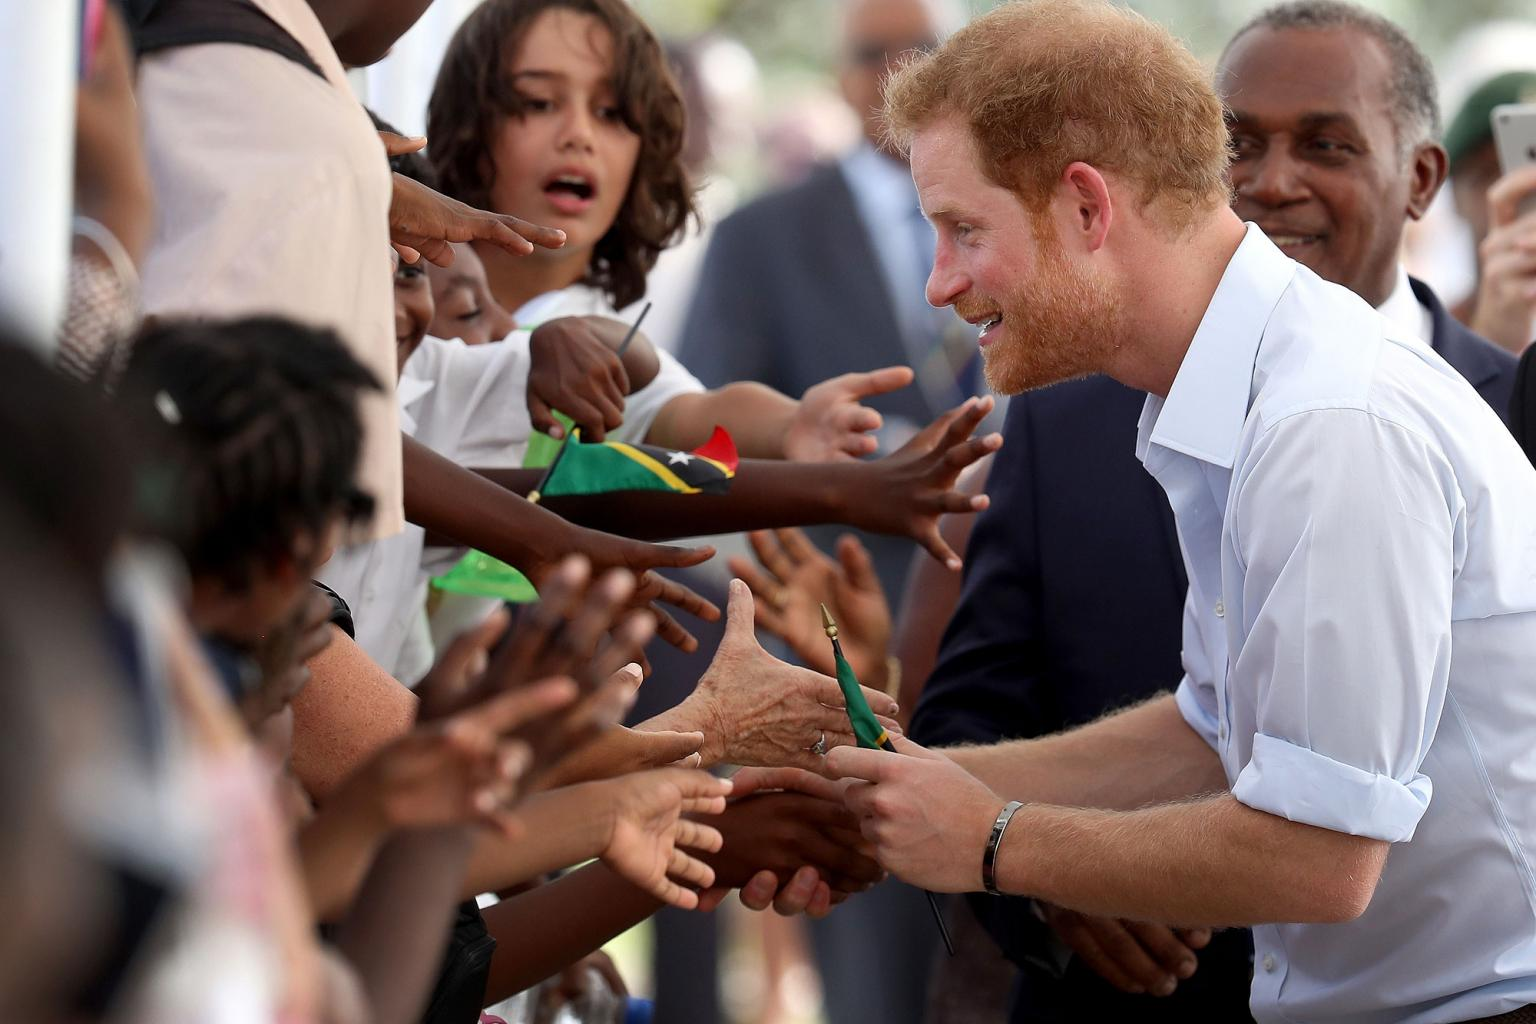 Prince Harry Makes Impromptu Stop During Caribbean Trip to Chat with Pre-Schoolers